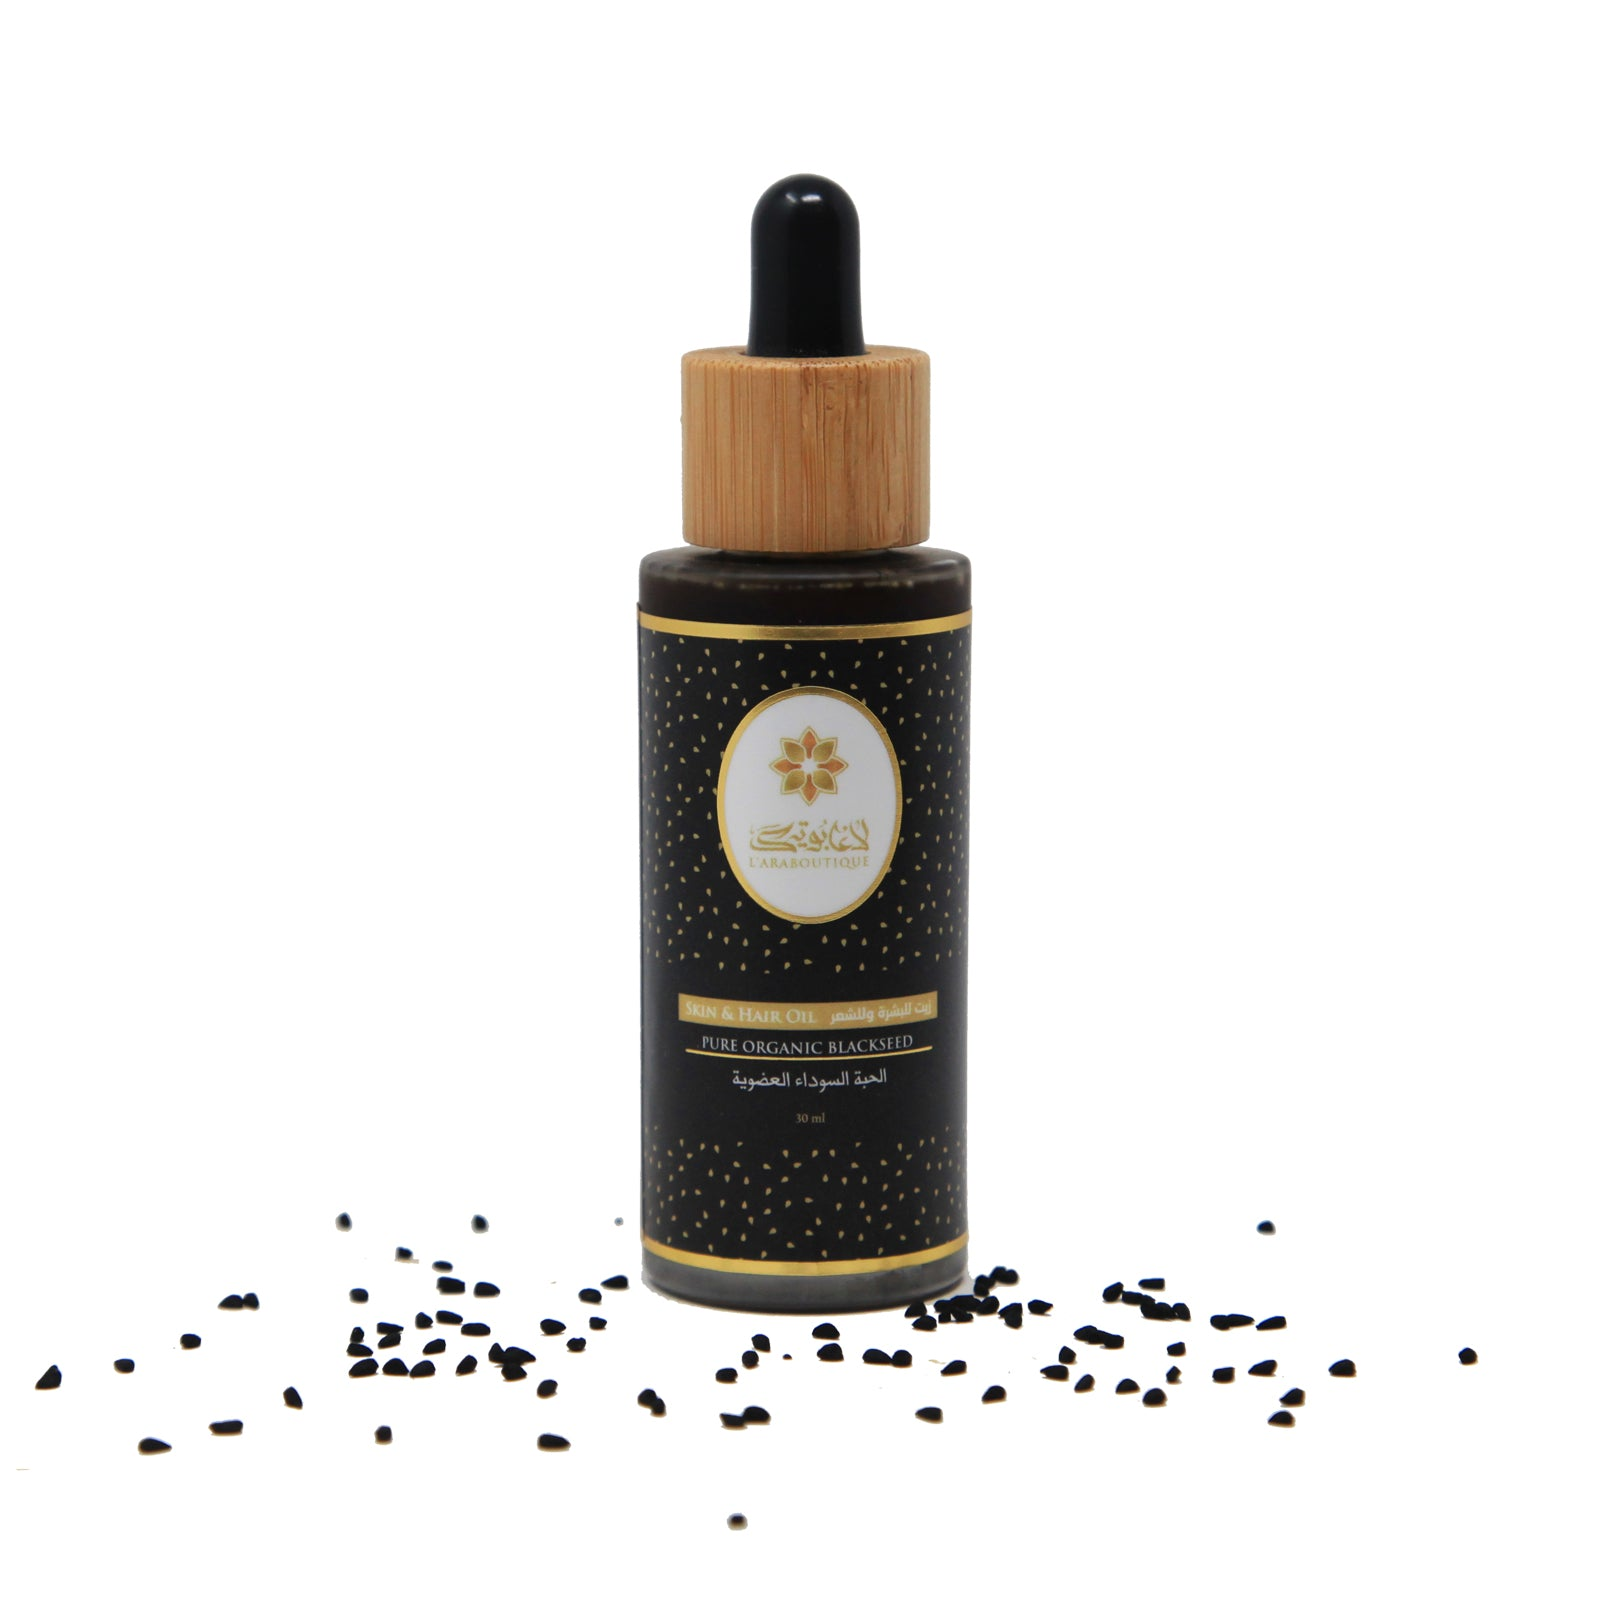 Pure Organic Blackseed Oil - 30ml